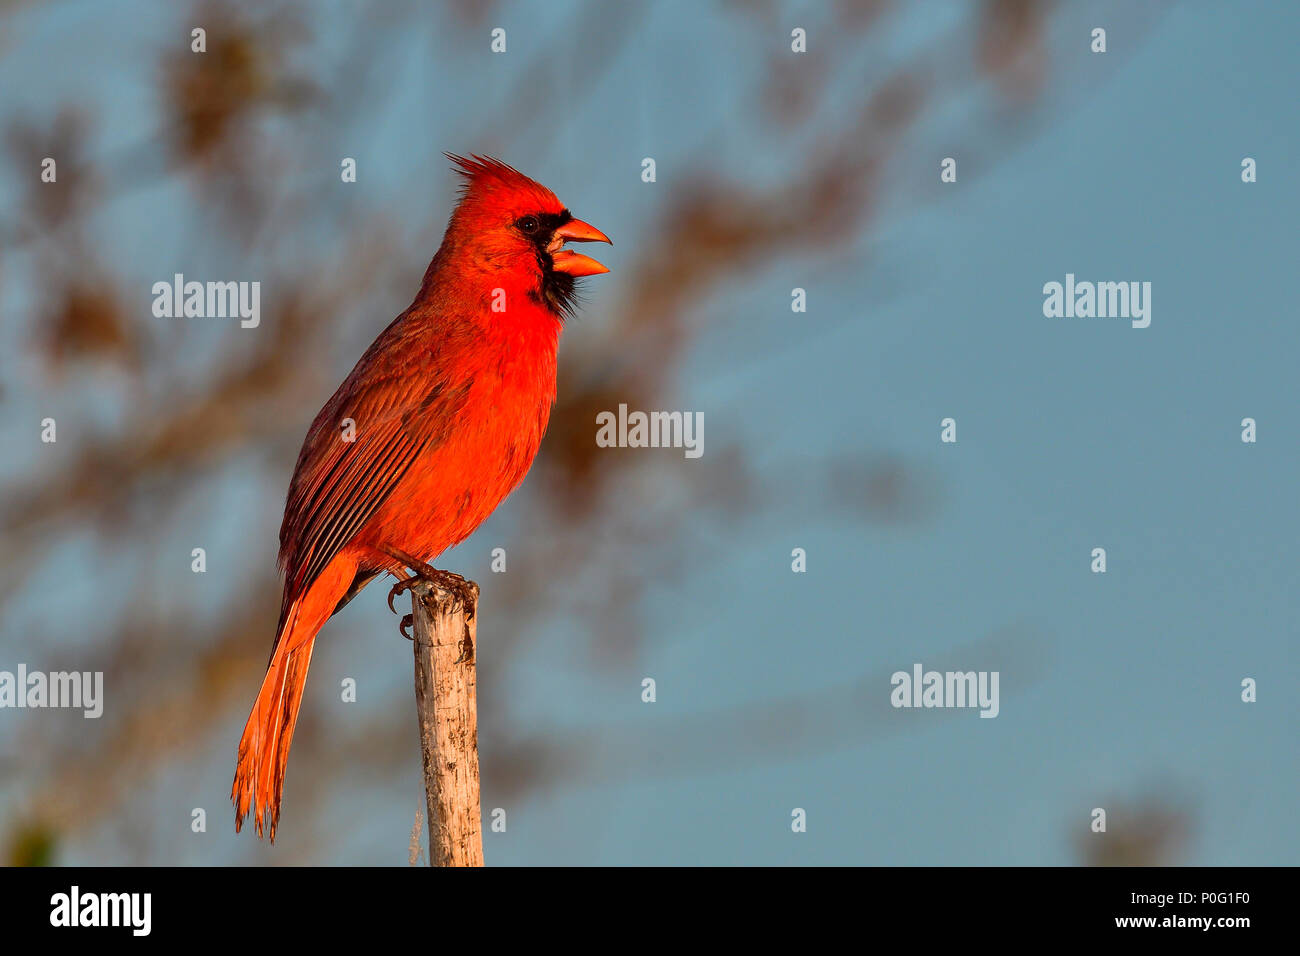 Northern cardinal is enjoying first light in the morning while broadcasting a message. - Stock Image